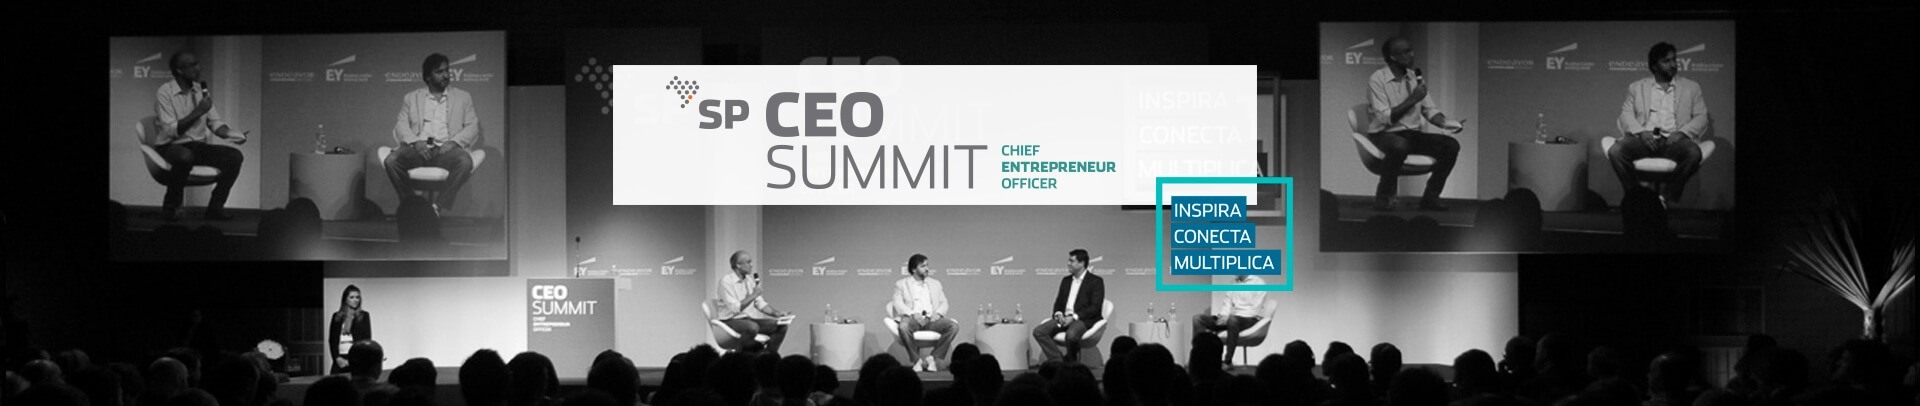 CEO Summit SP banner